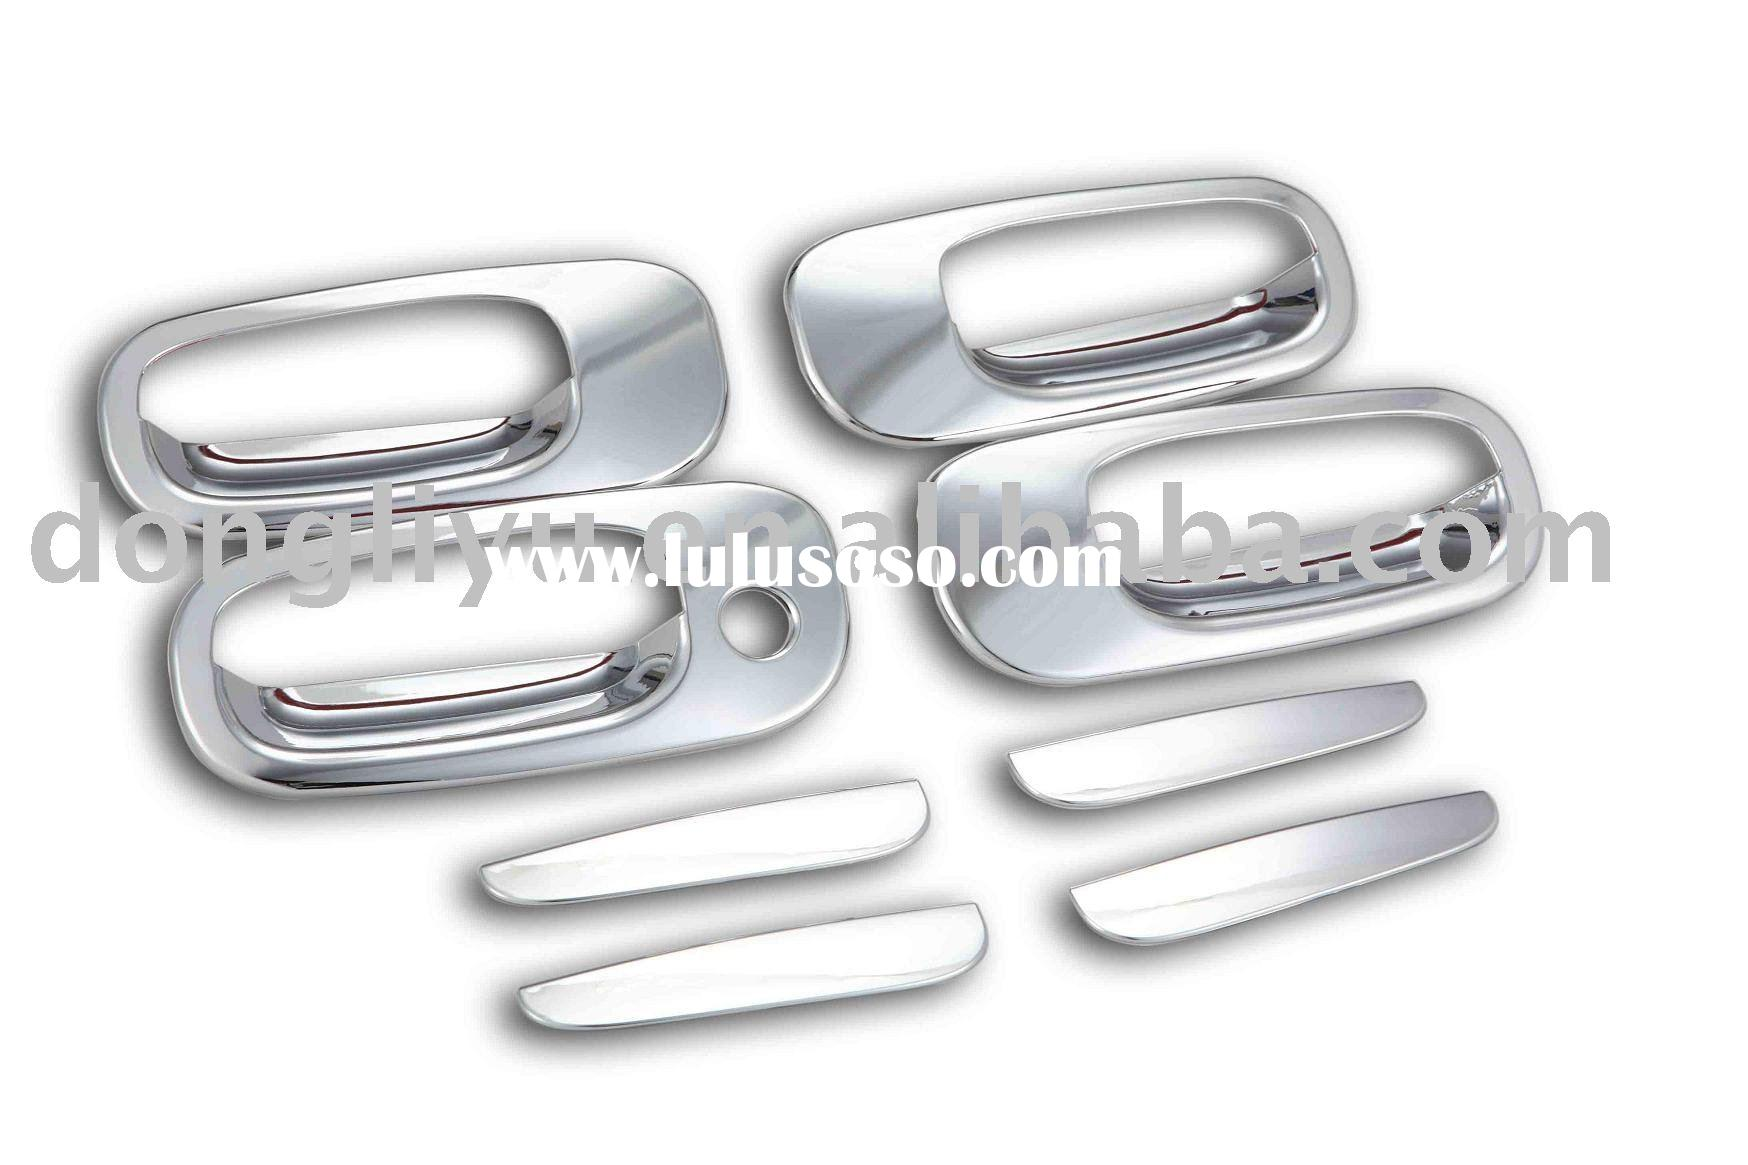 Car Chrome door Handle Cover for Dodge charger